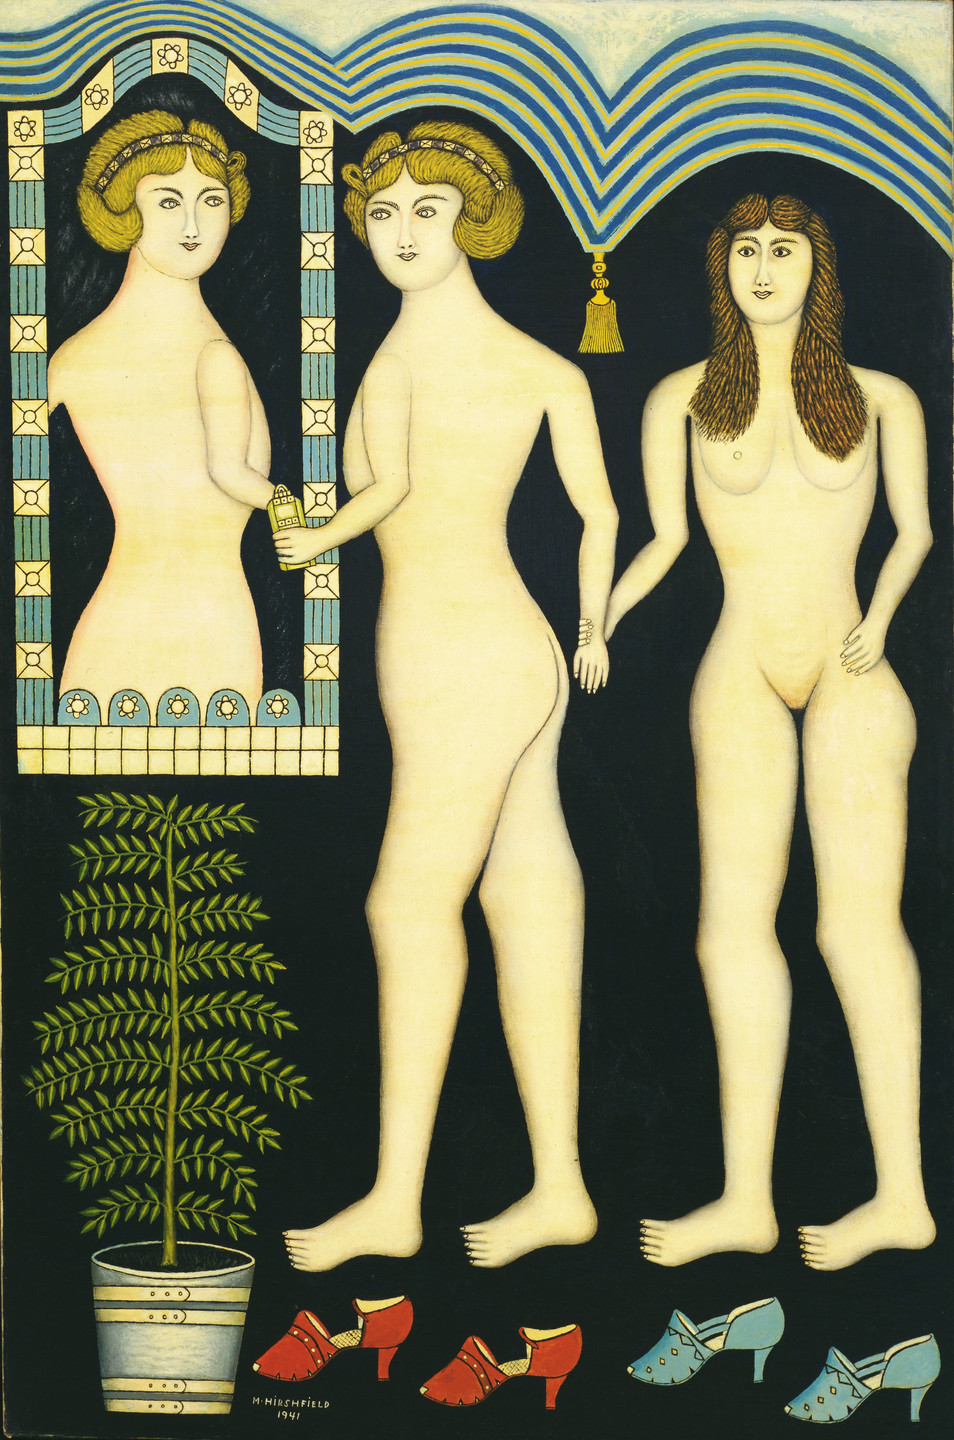 Morris Hirshfield. Inseparable Friends. 1941